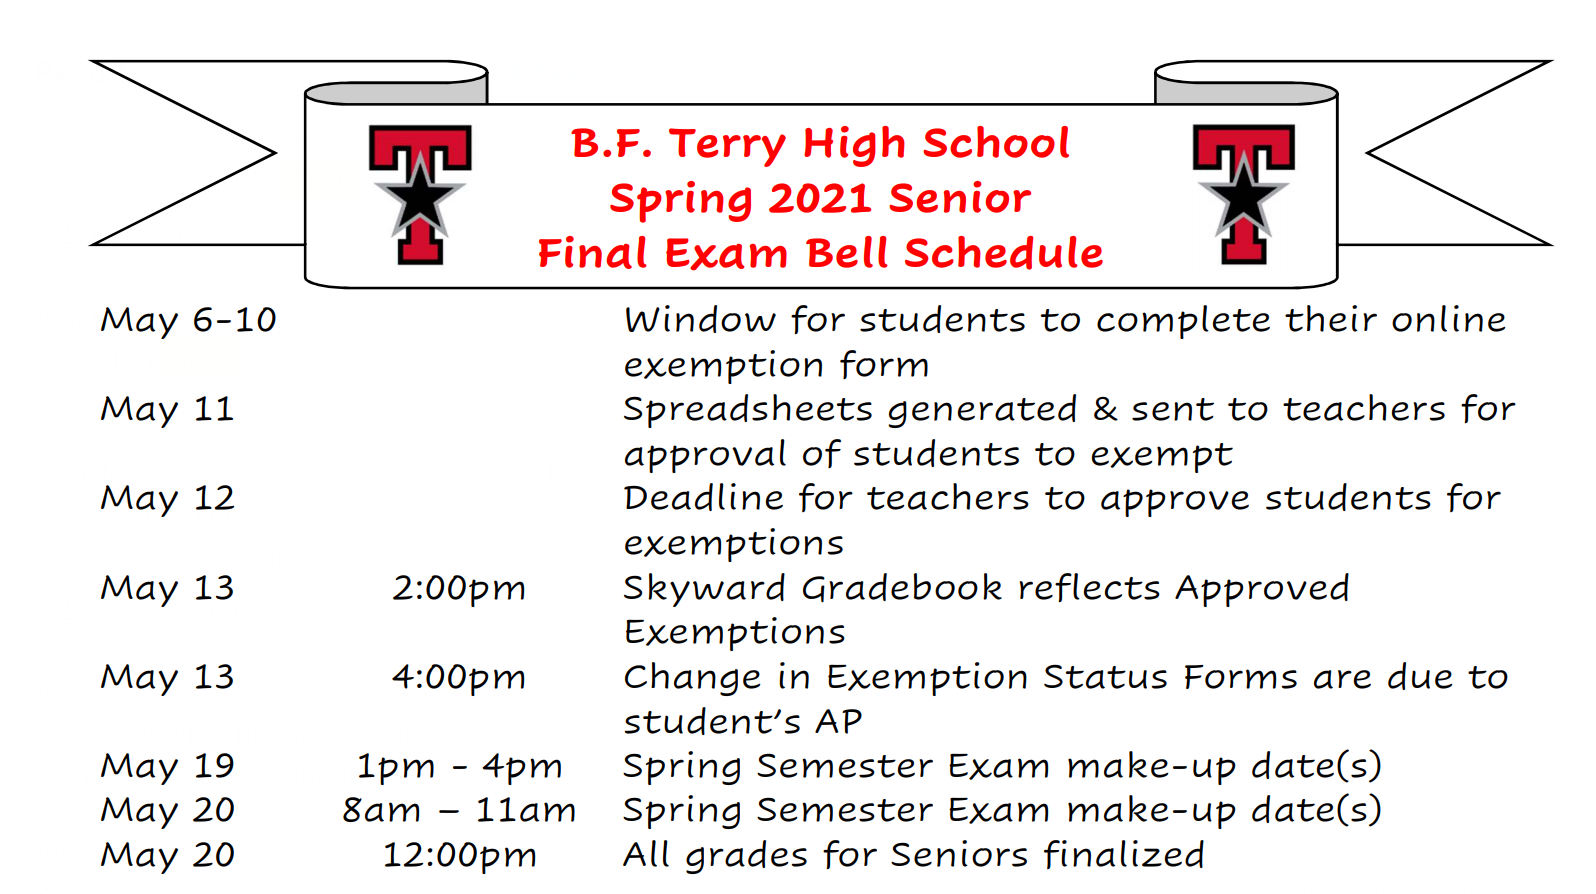 2021 Senior Final exam schedule